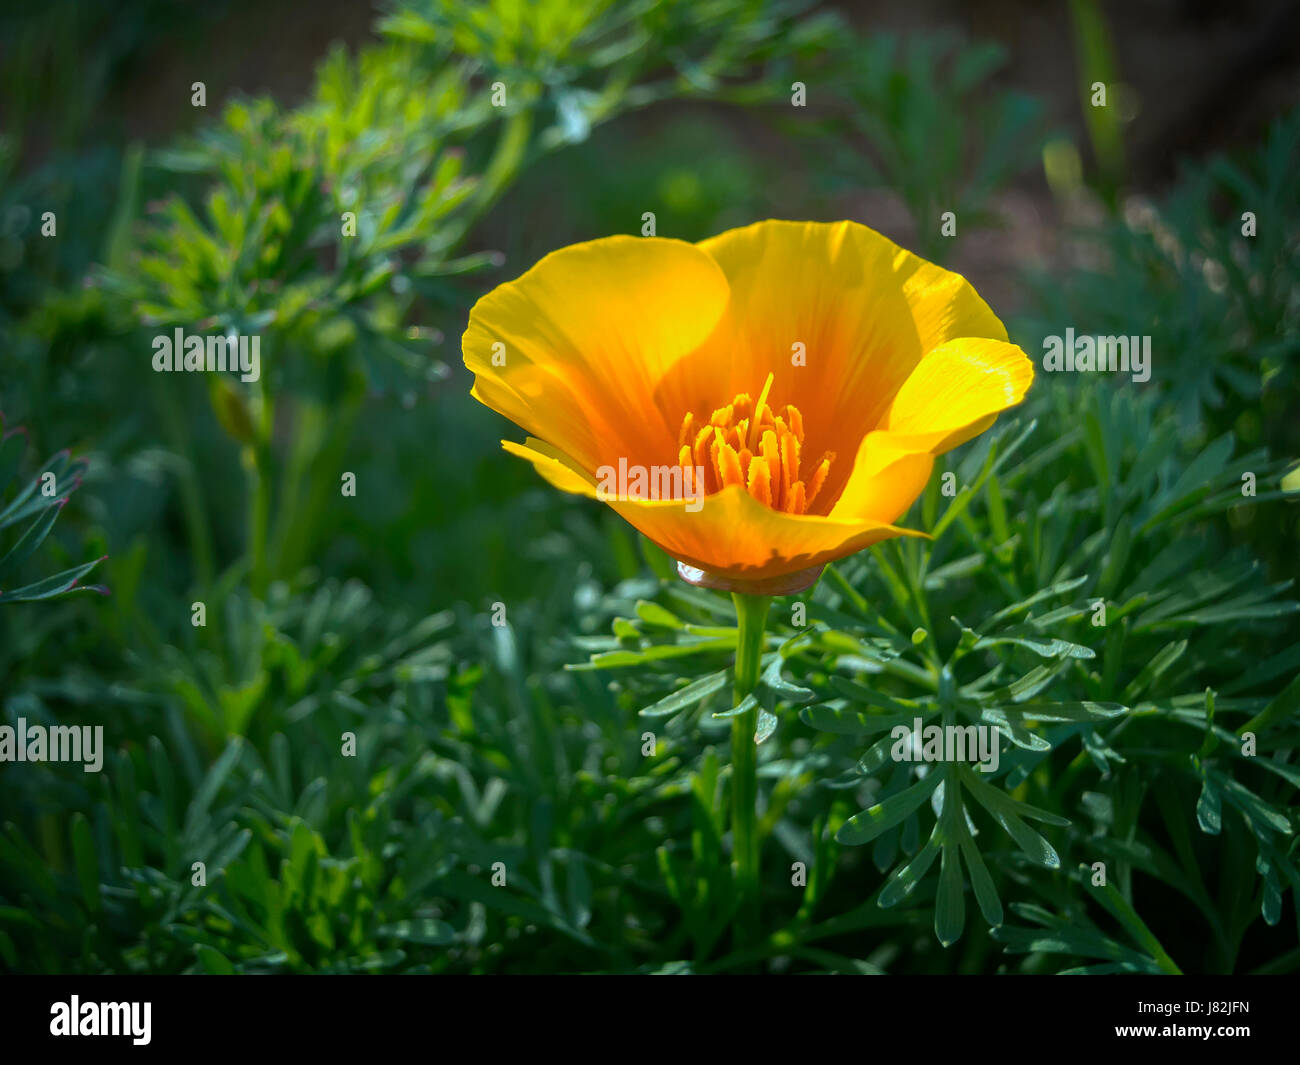 Image of a California growing in the wild at a local Norther California county park. - Stock Image